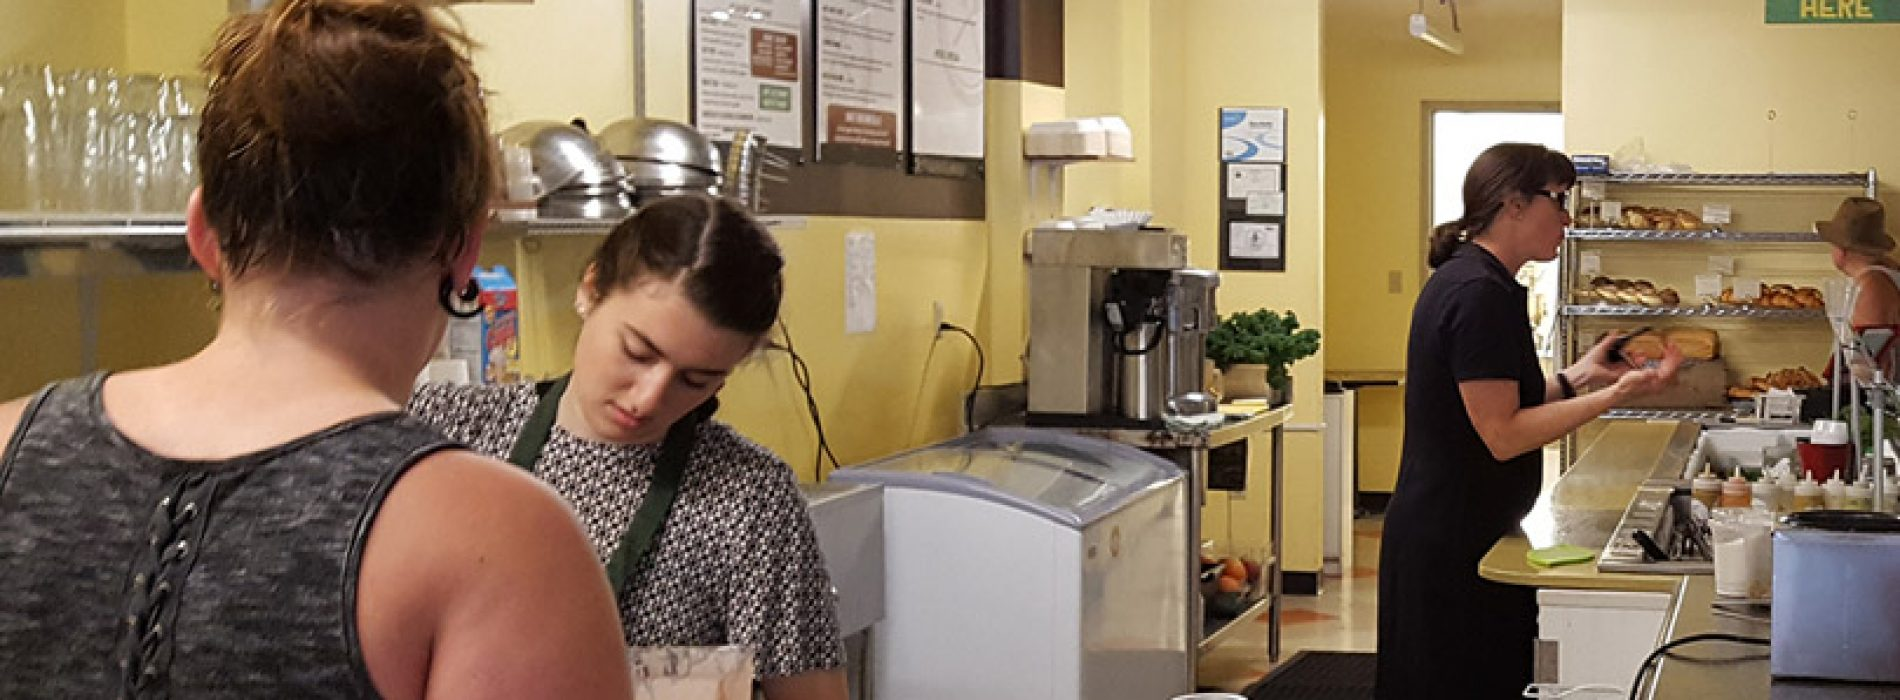 New attempt to cut Maine's minimum wage targets younger workers